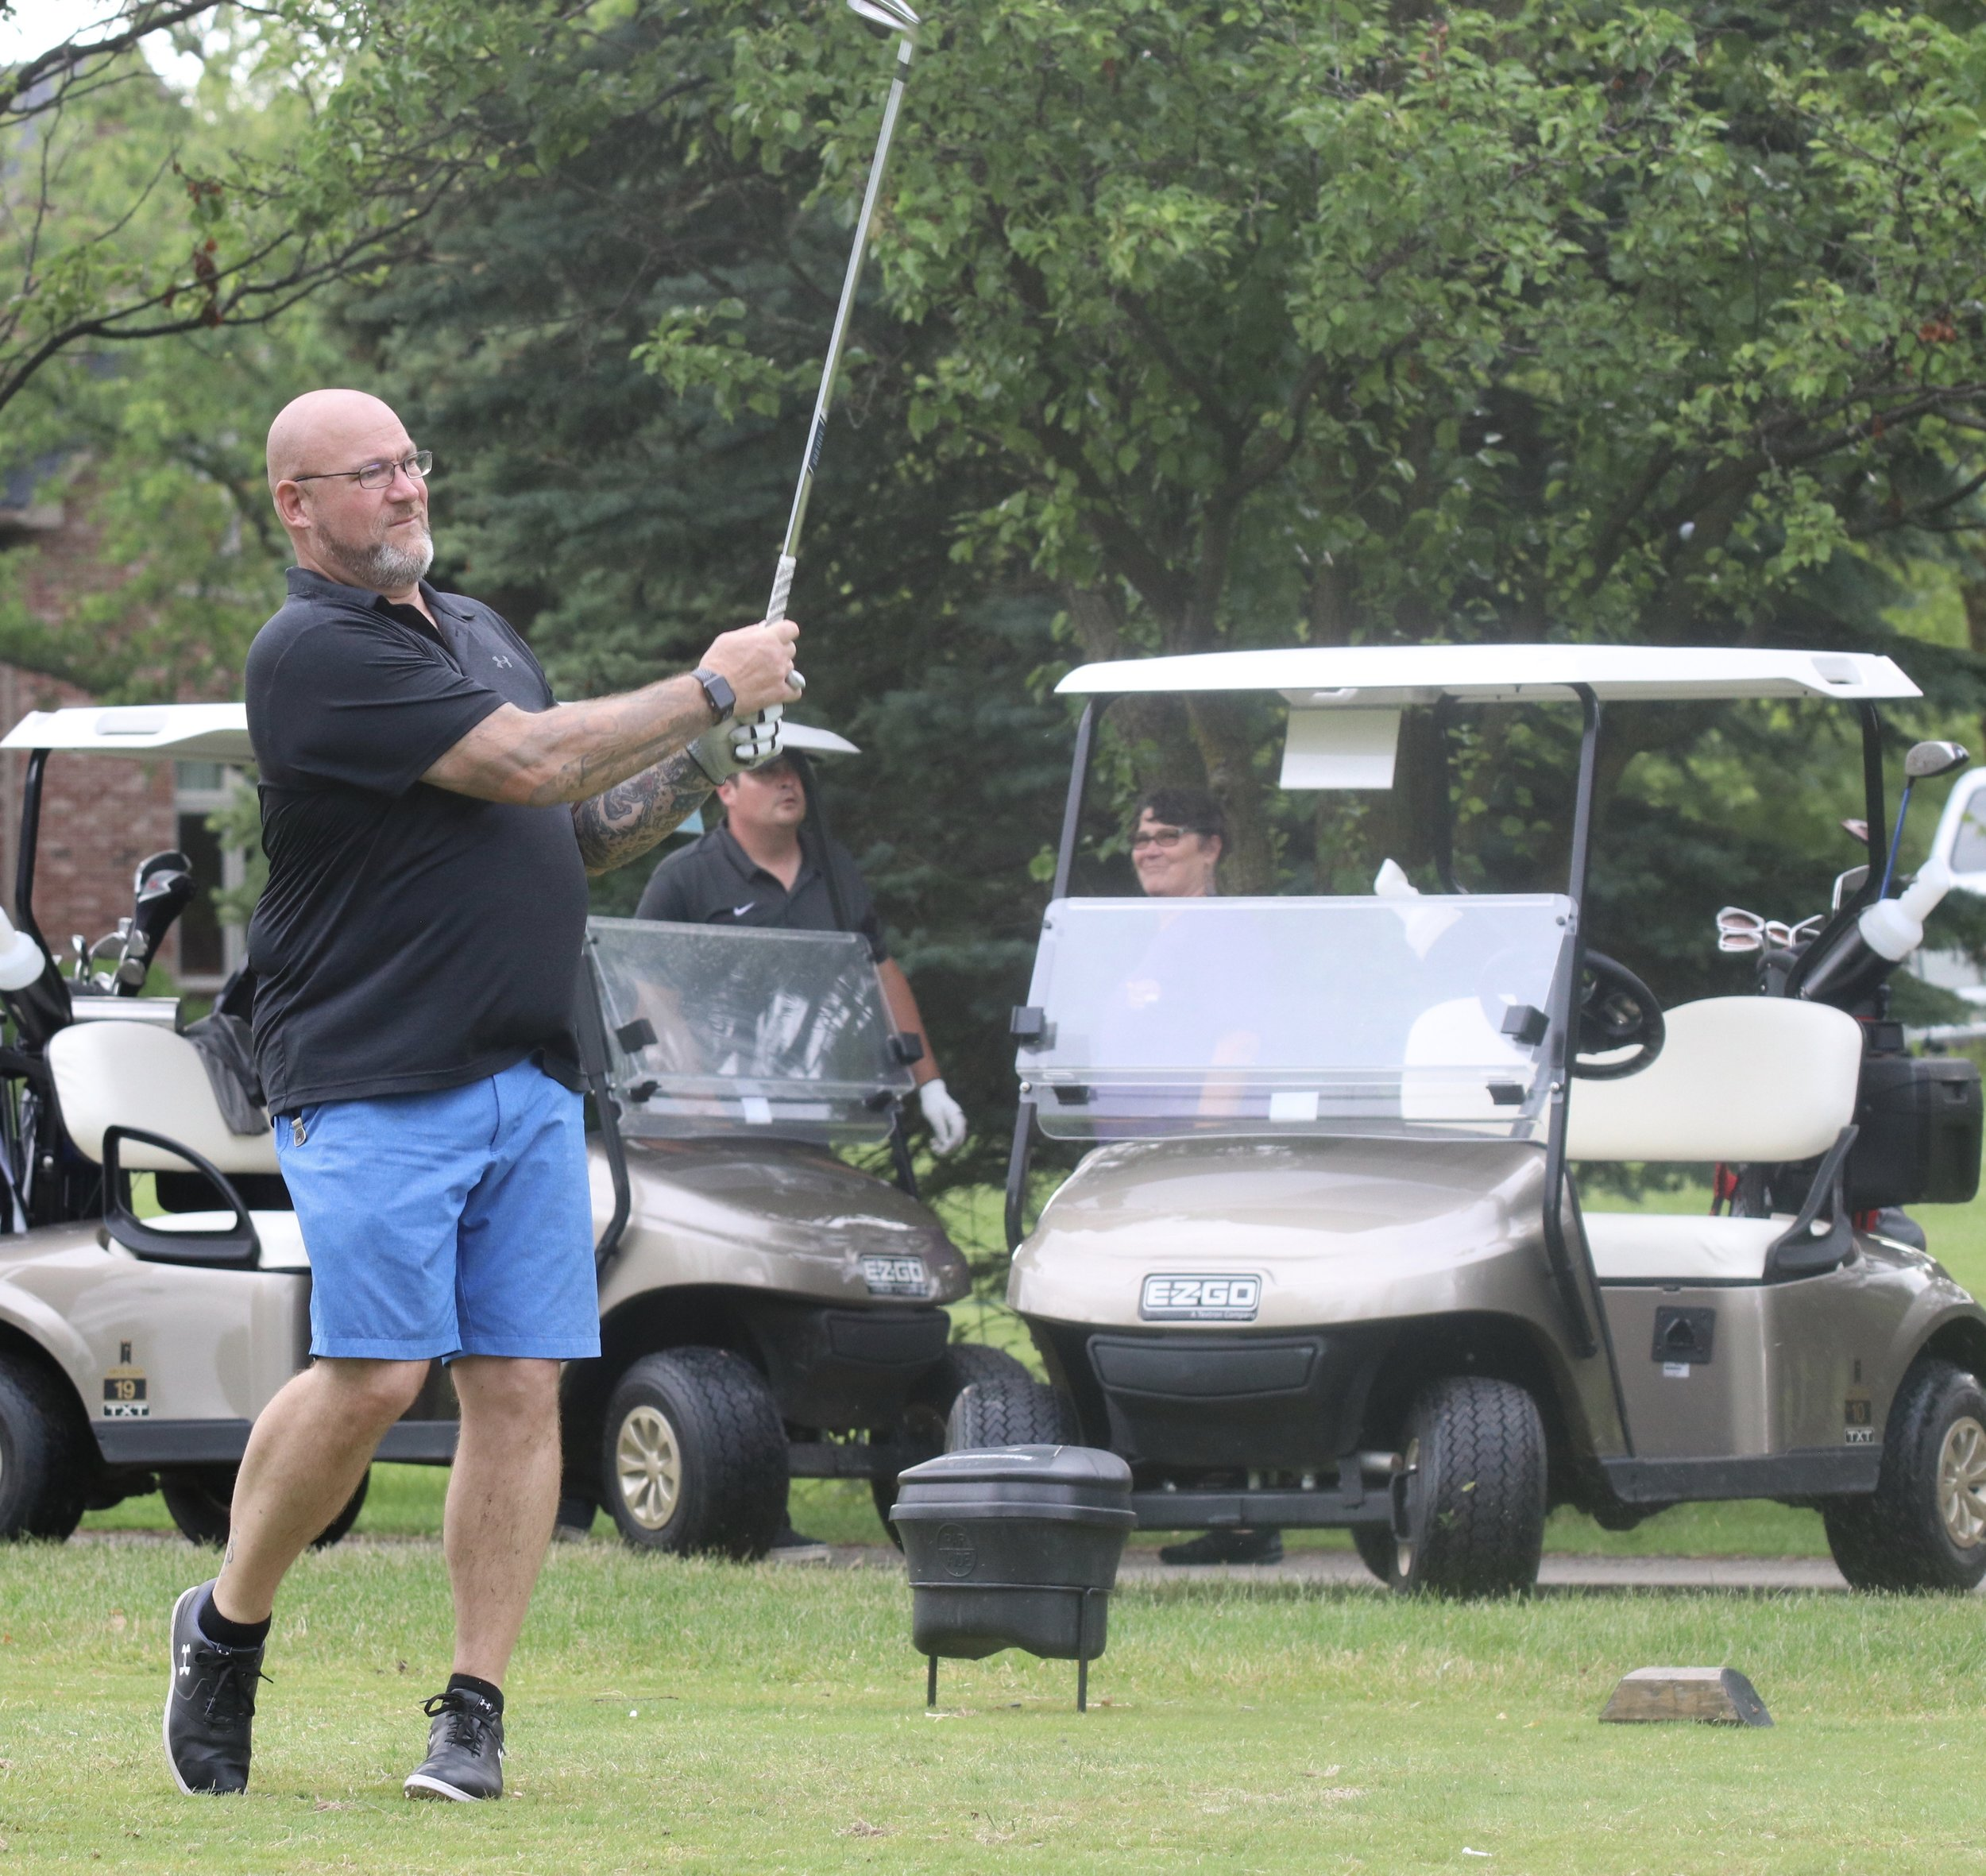 June 23, 2019 Jeff Yalden appeared at the Dilly Bar Classic Golf Fundraiser in Naperville, IL. All proceeds raised for The Jeff Yalden Foundation, Inc. Teen Mental Health and Suicide Prevention.